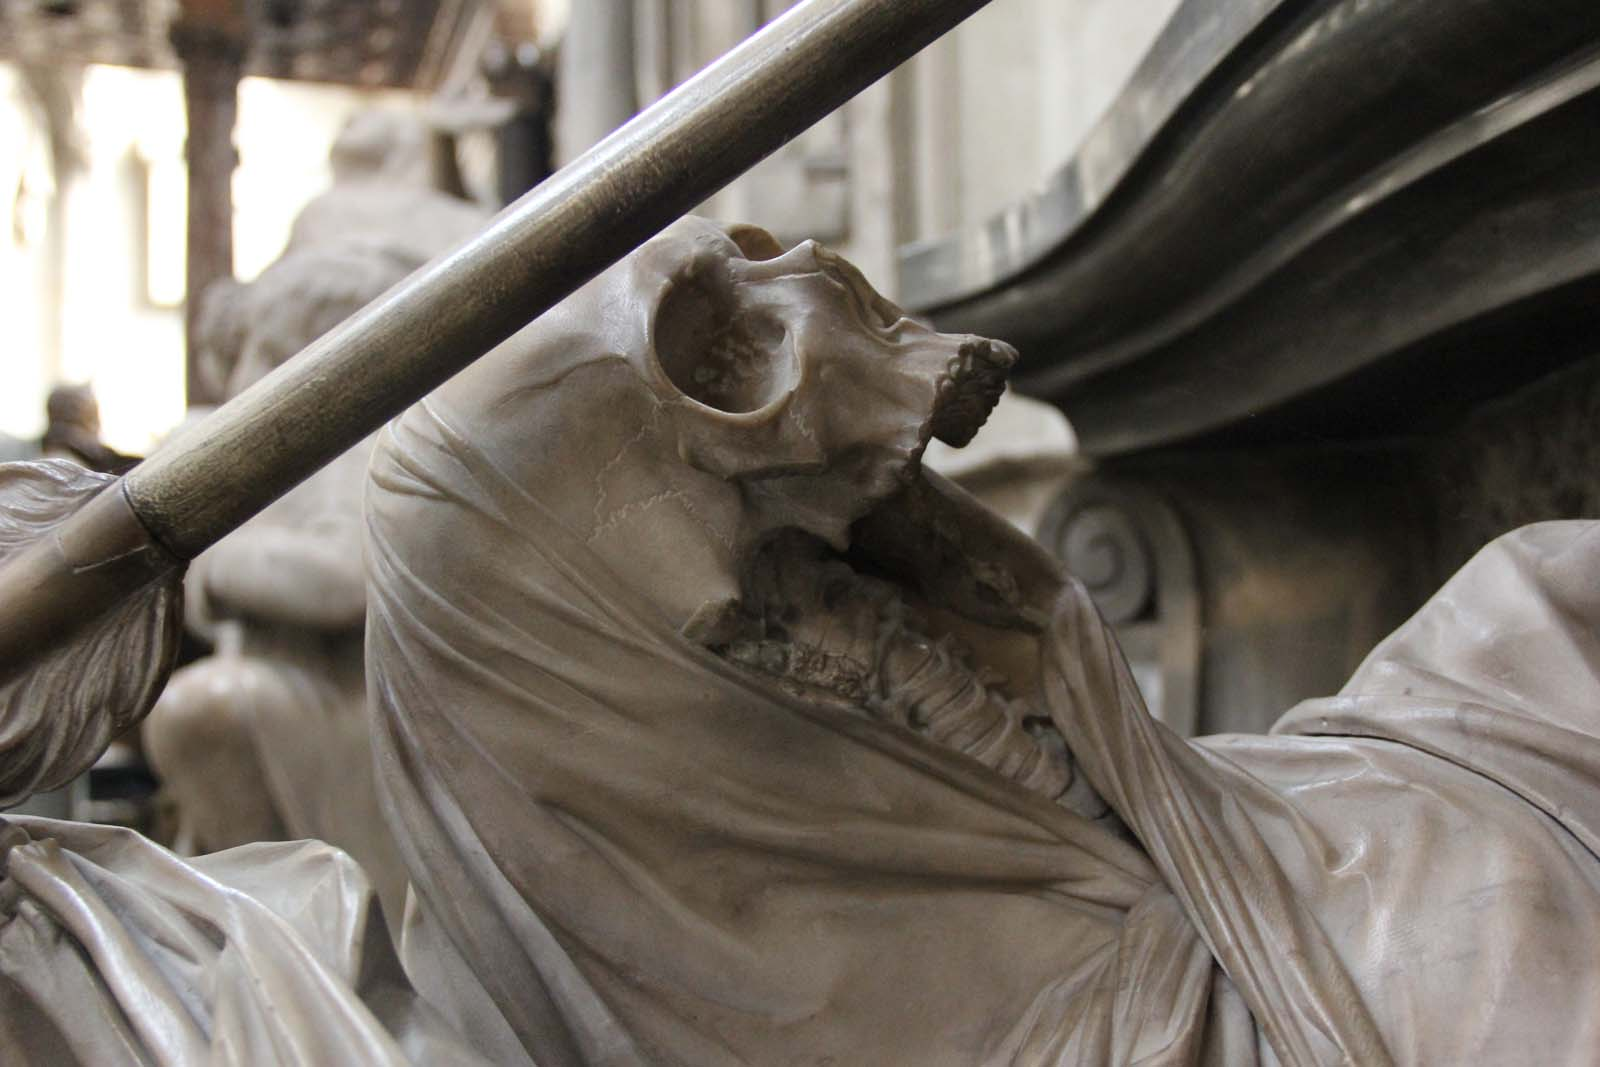 close up photo of a sculpture of a skeleton with a missing lower jaw